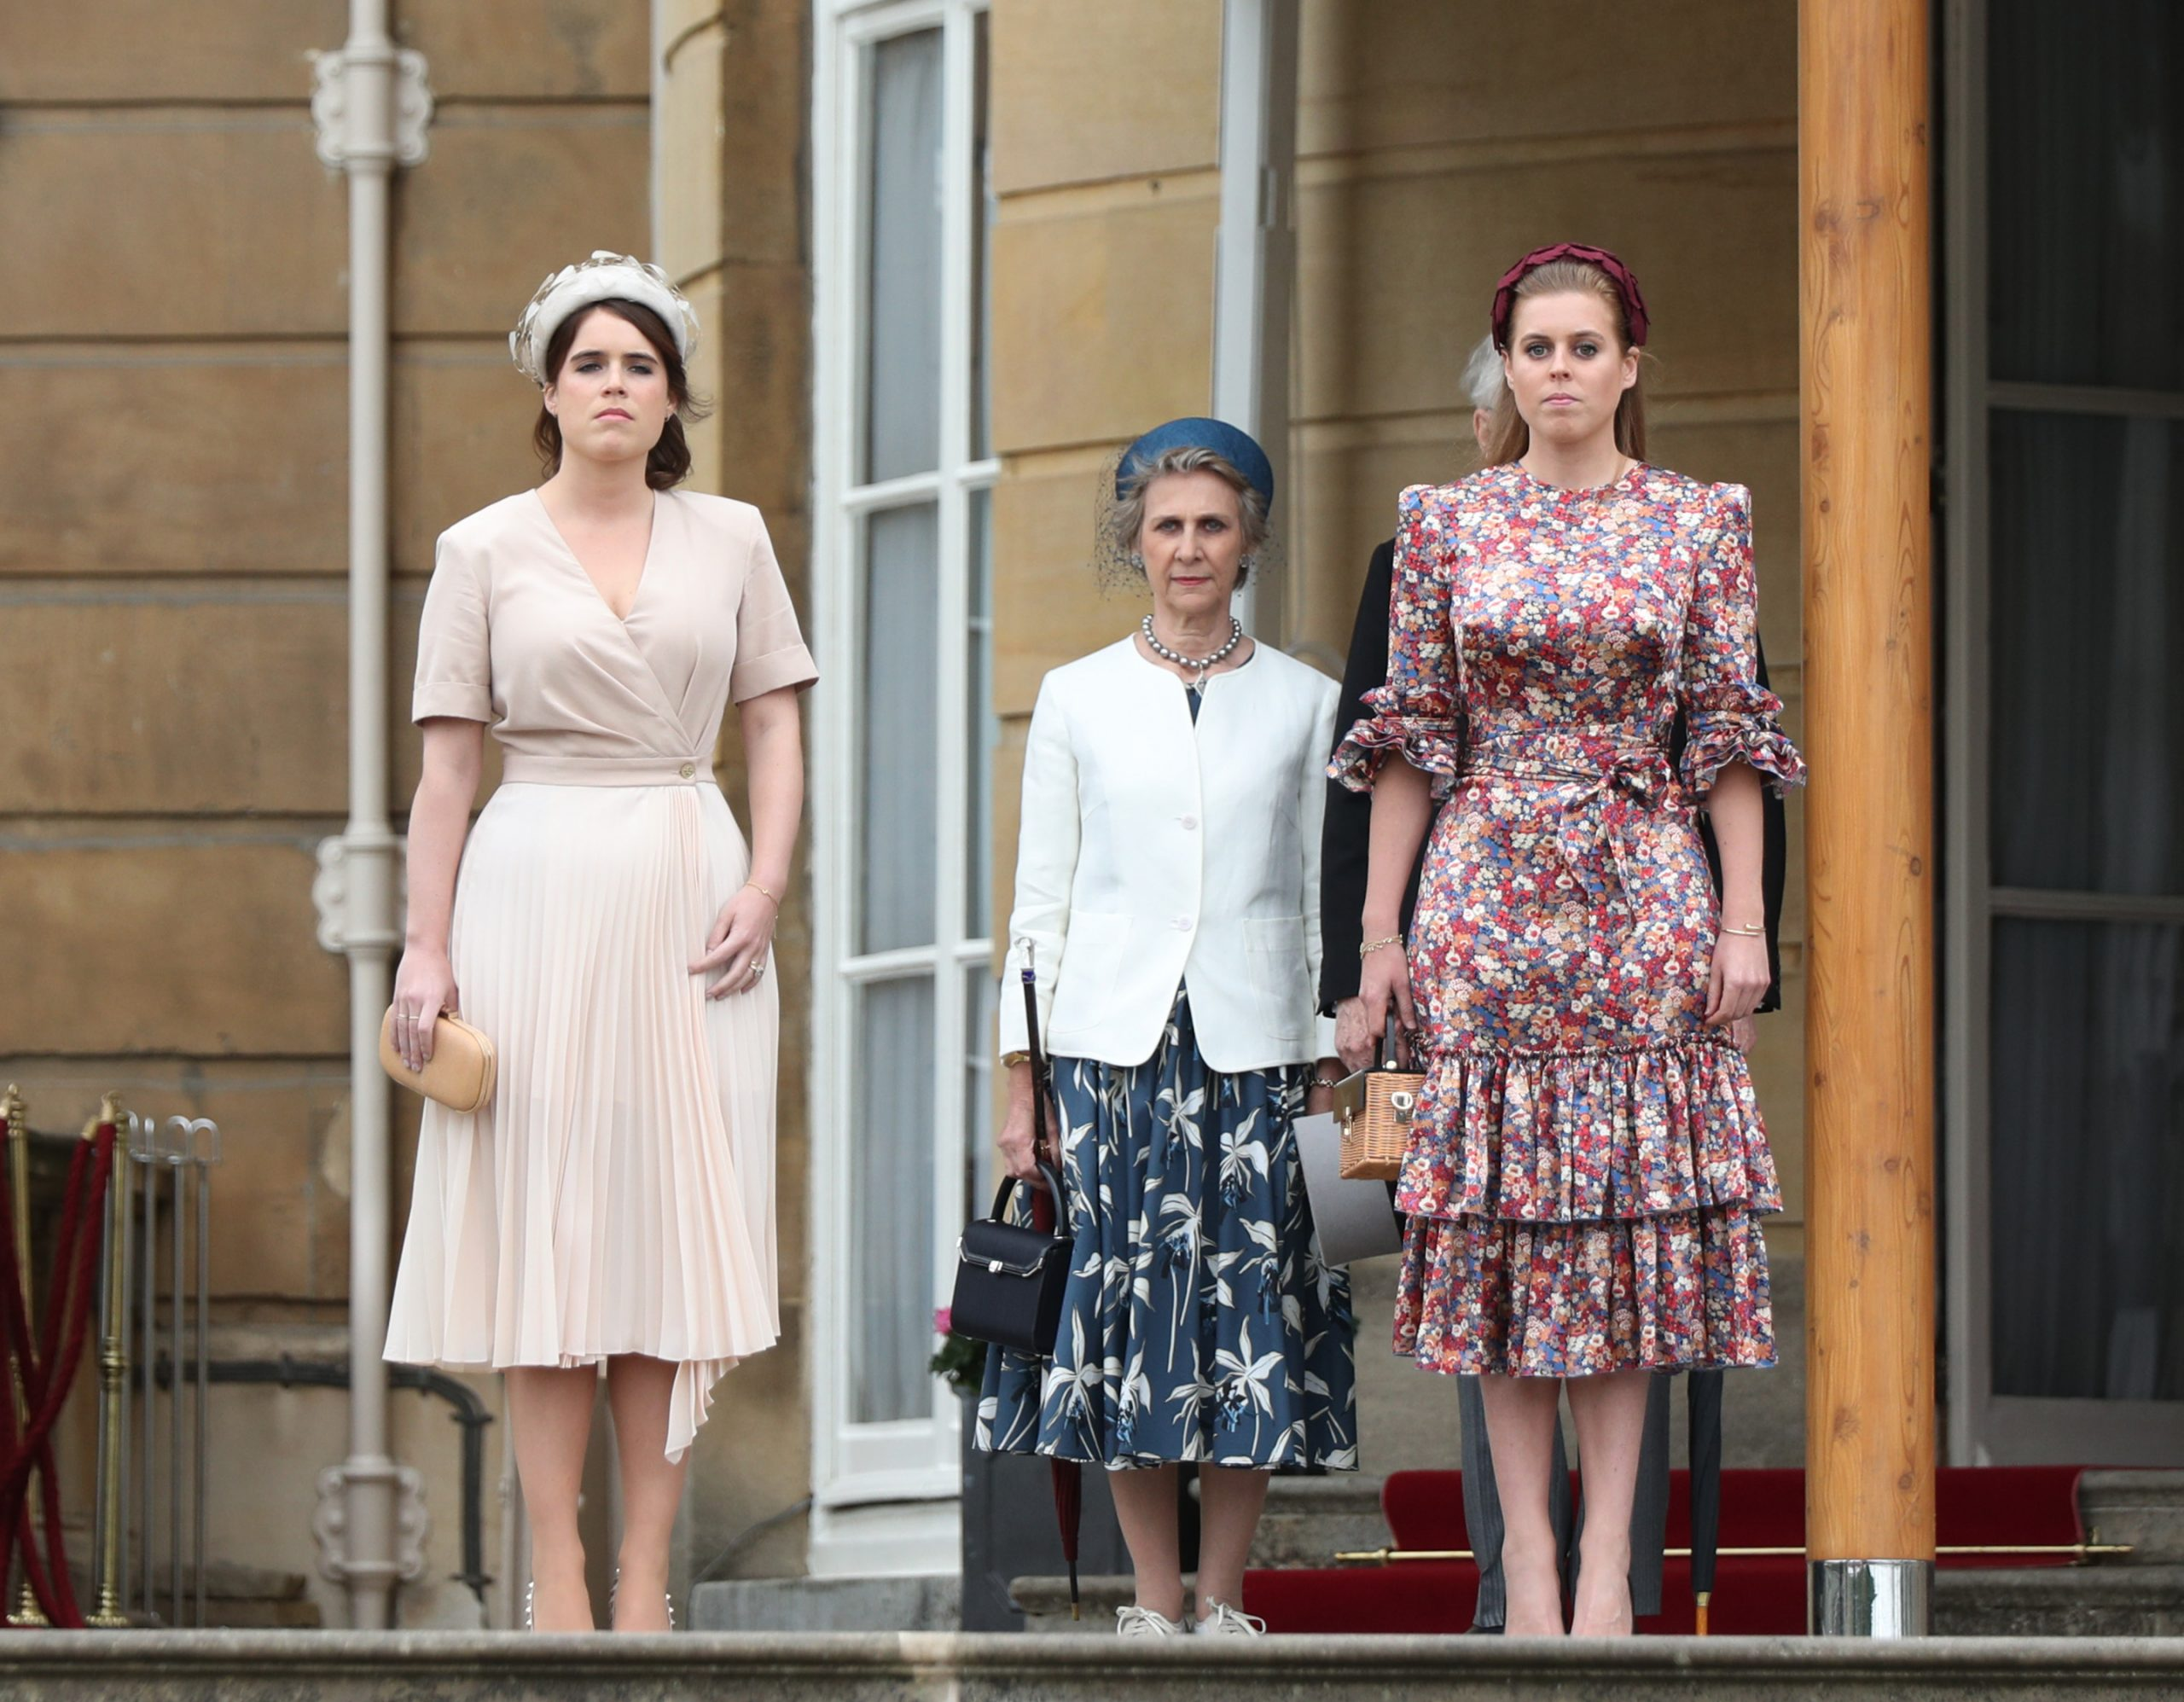 Princess Beatrice And Eugenie Delight Fans In Outfits Matching The